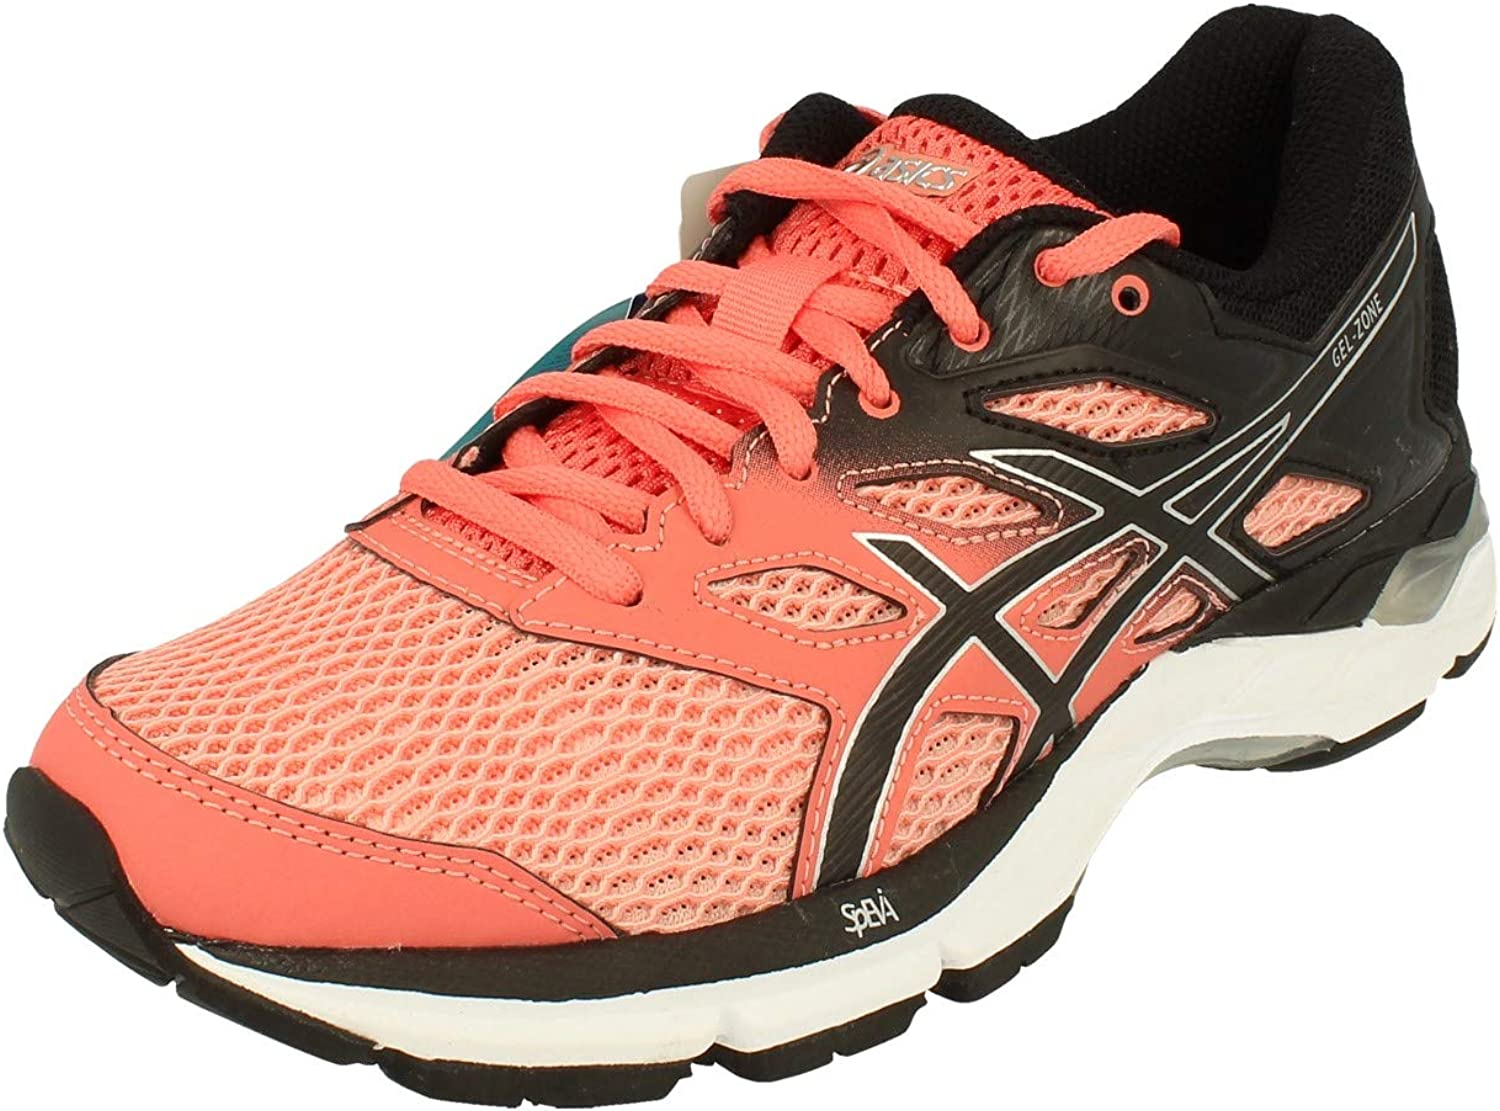 ASICS Gel-Zone 6 Womens Running Trainers 1012A496 Sneakers Shoes